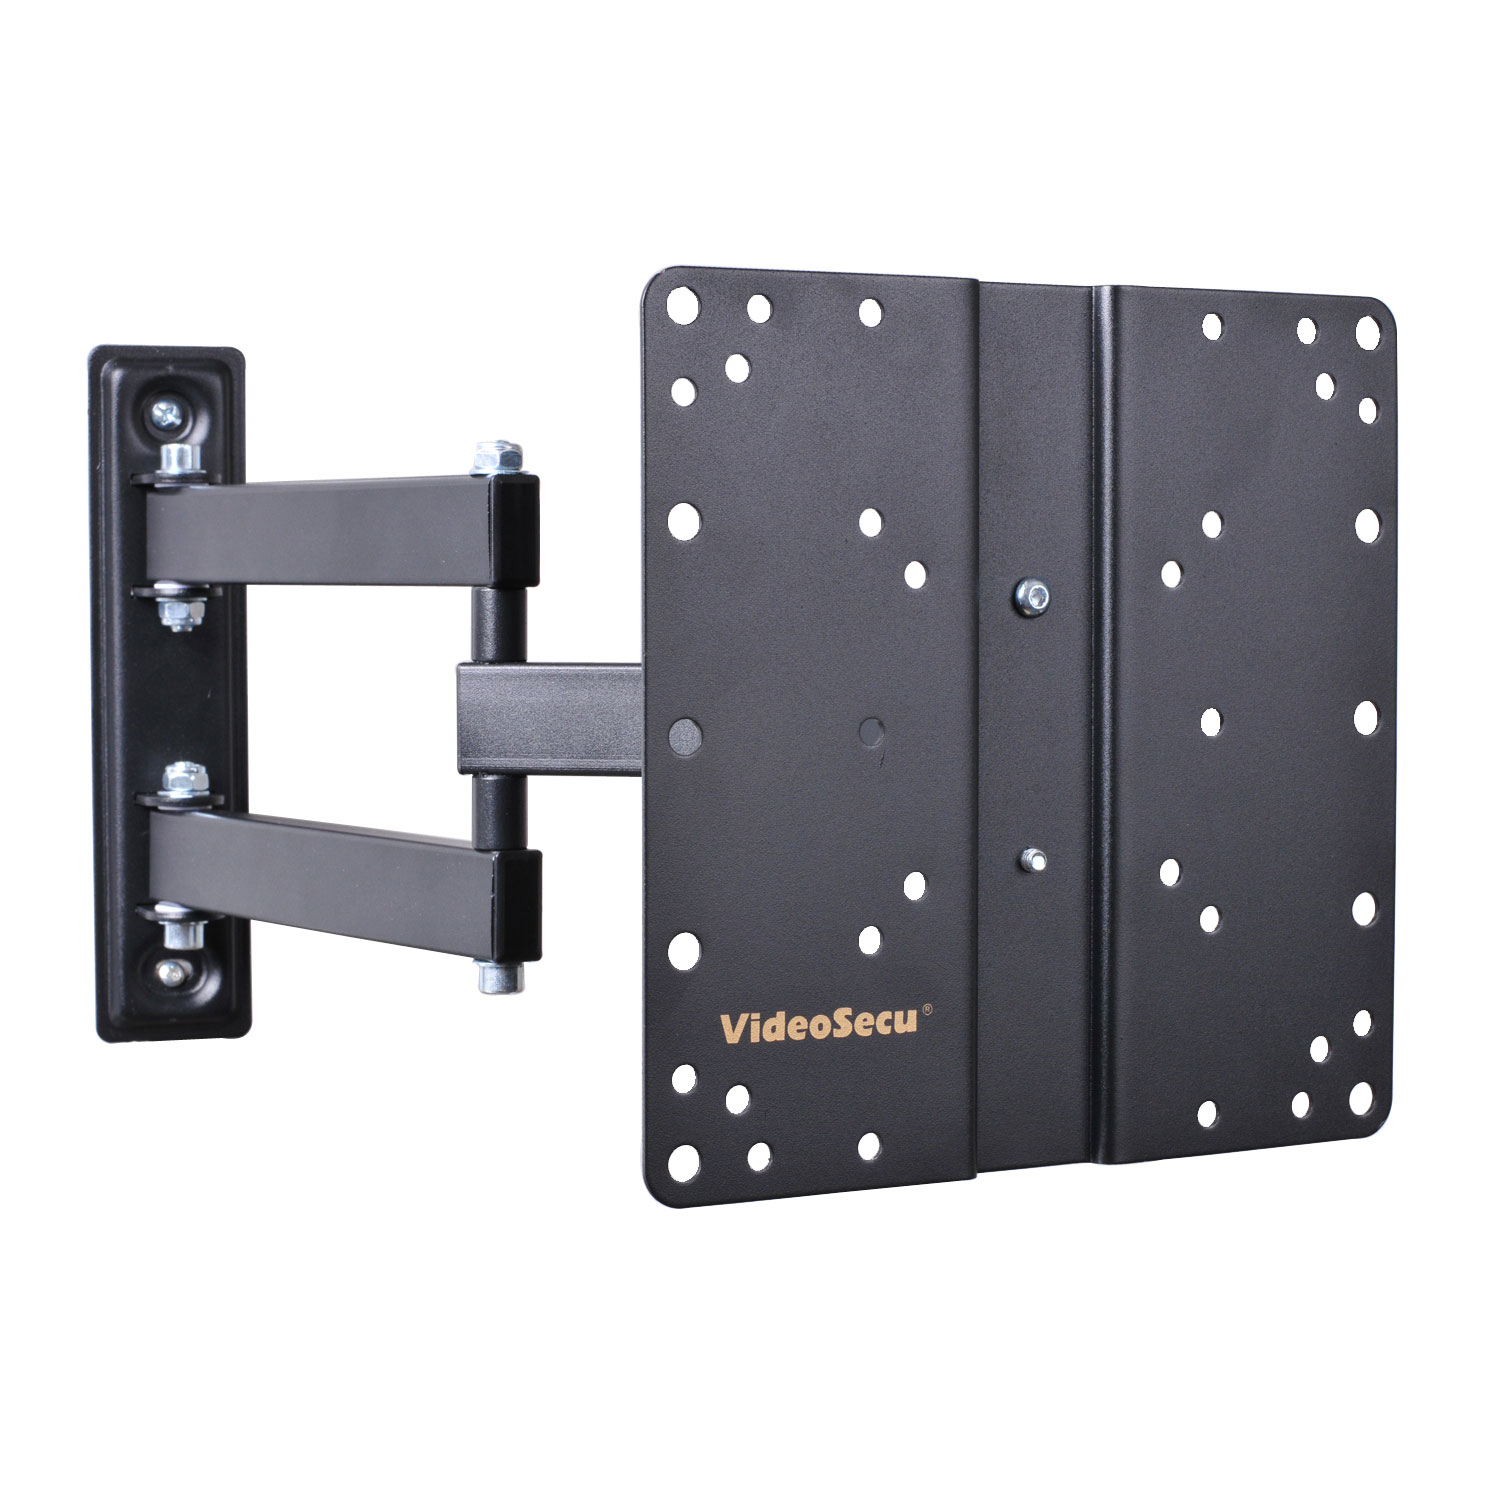 "VideoSecu Articulating TV Wall Mount for most 22-42"" LED ..."